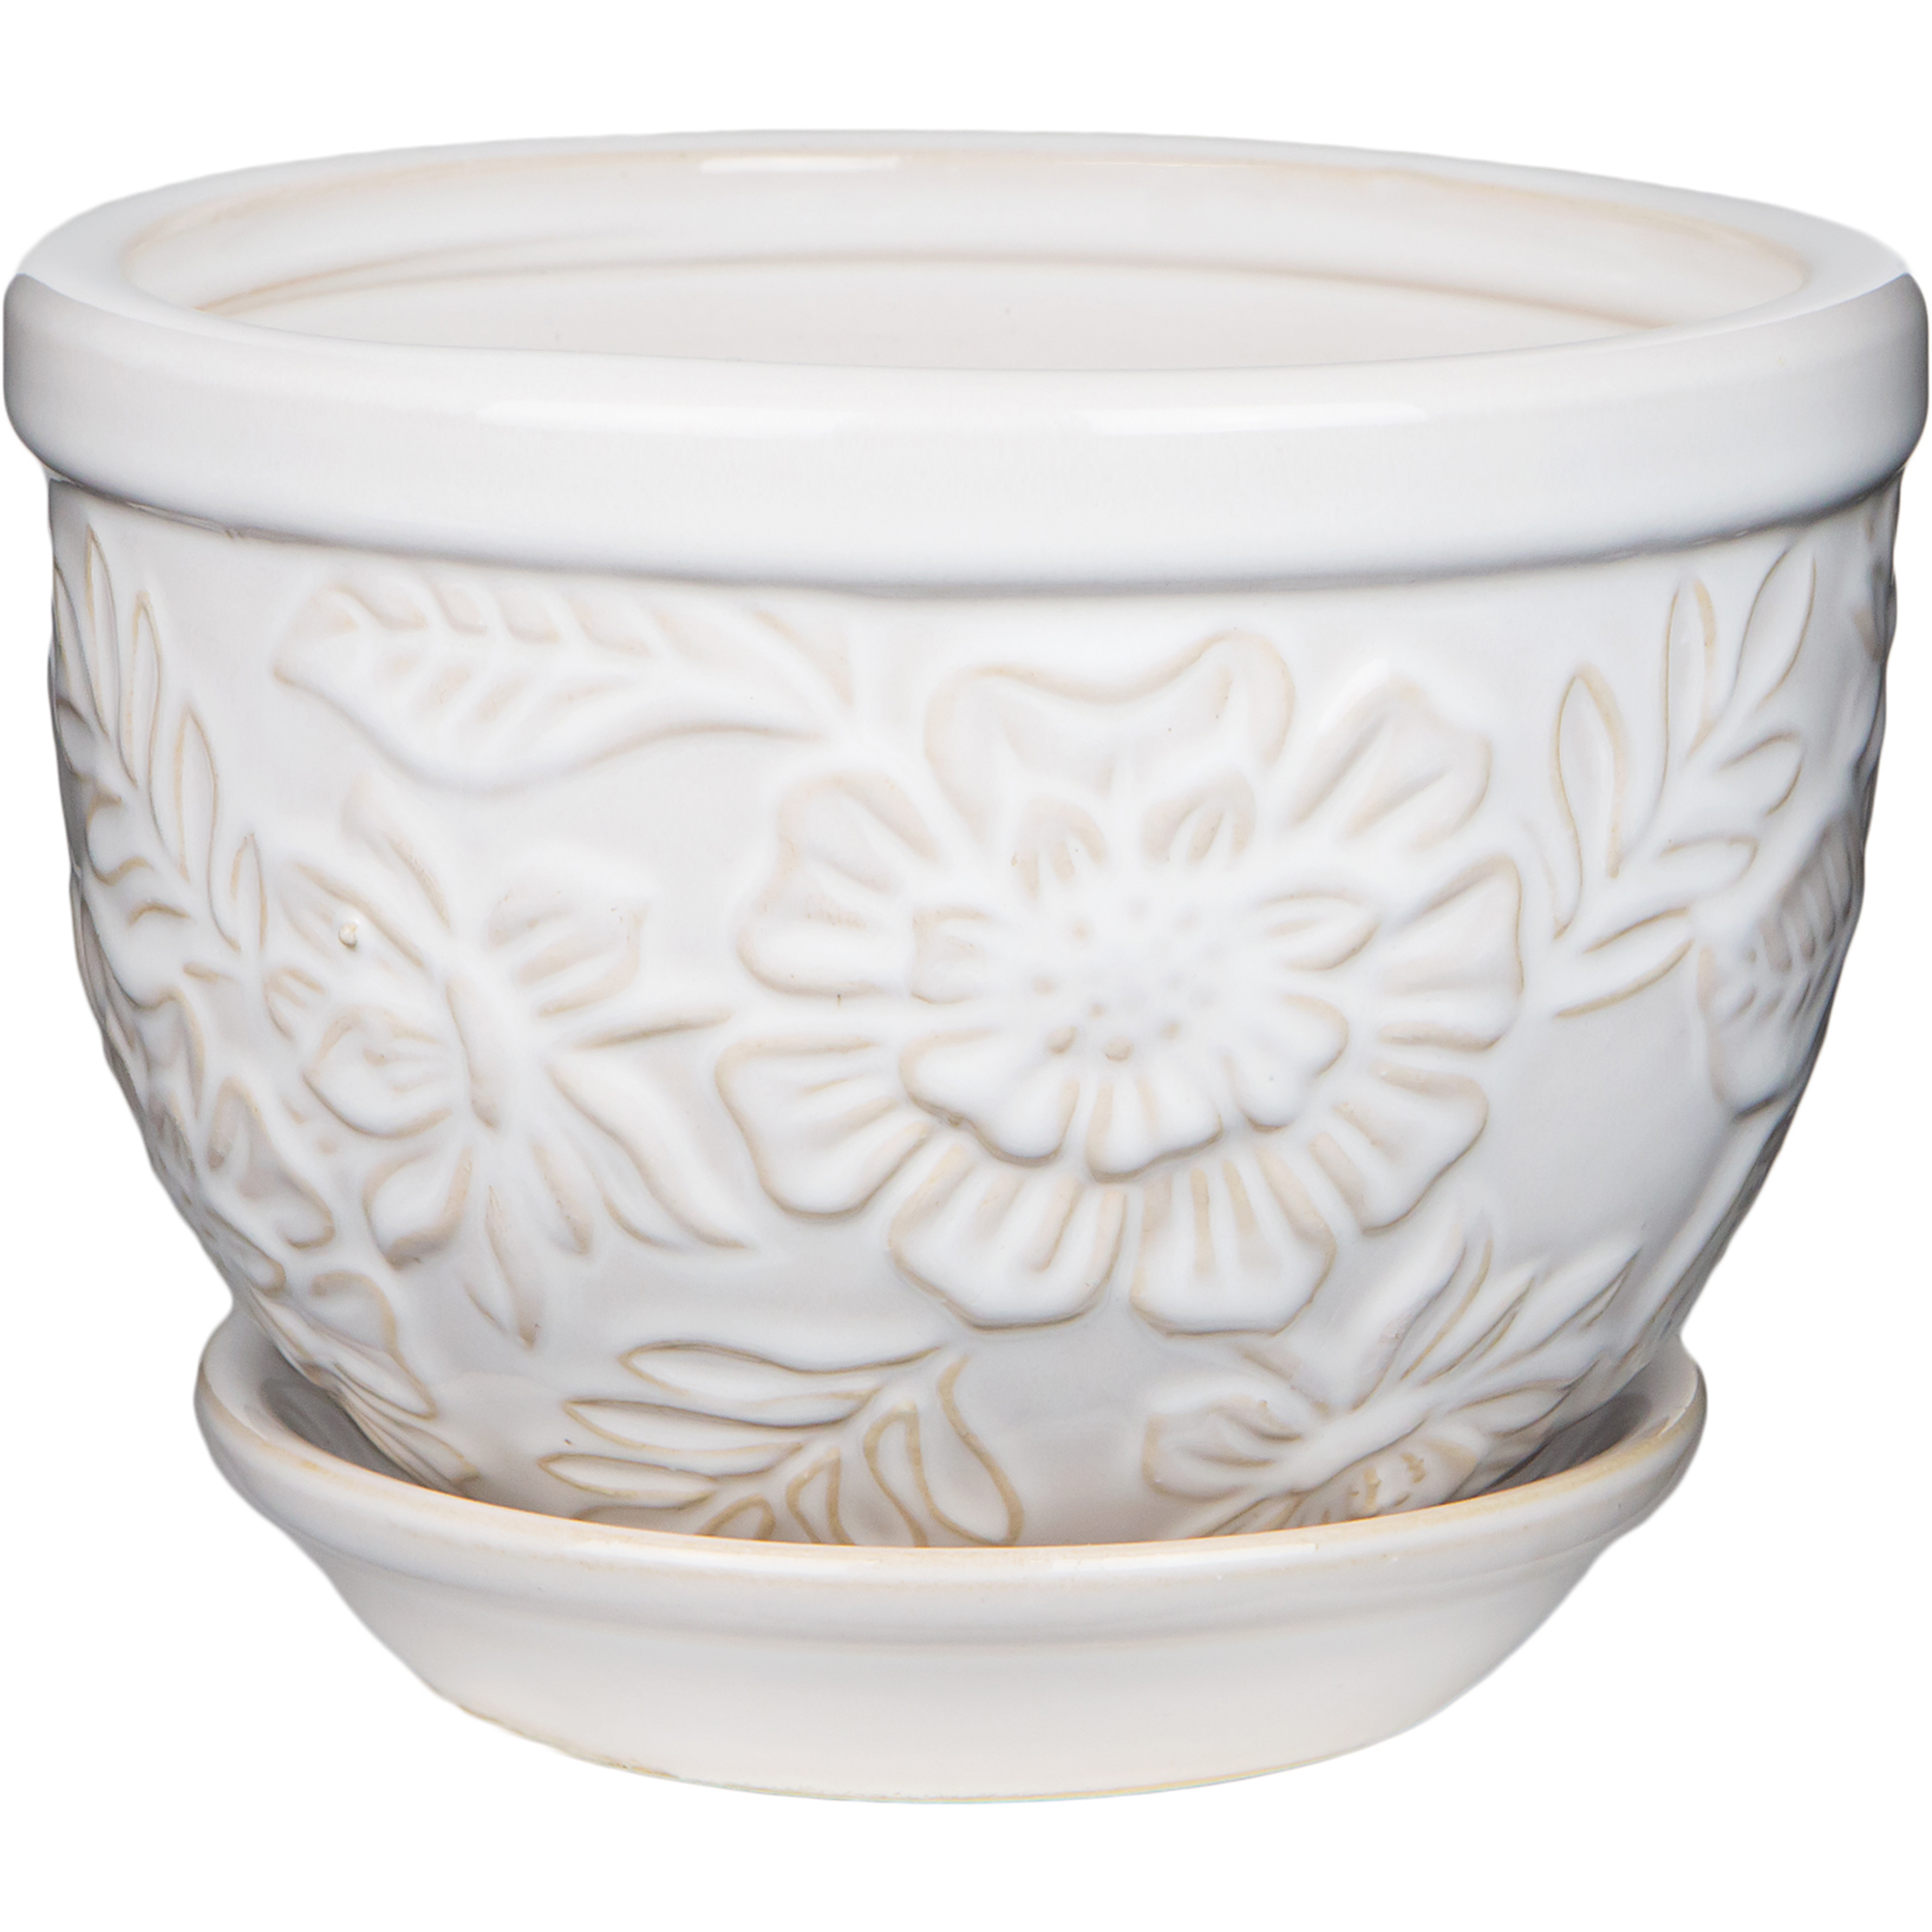 Pennington Ceramic Vintage Floral Pot Planter 6 Inch